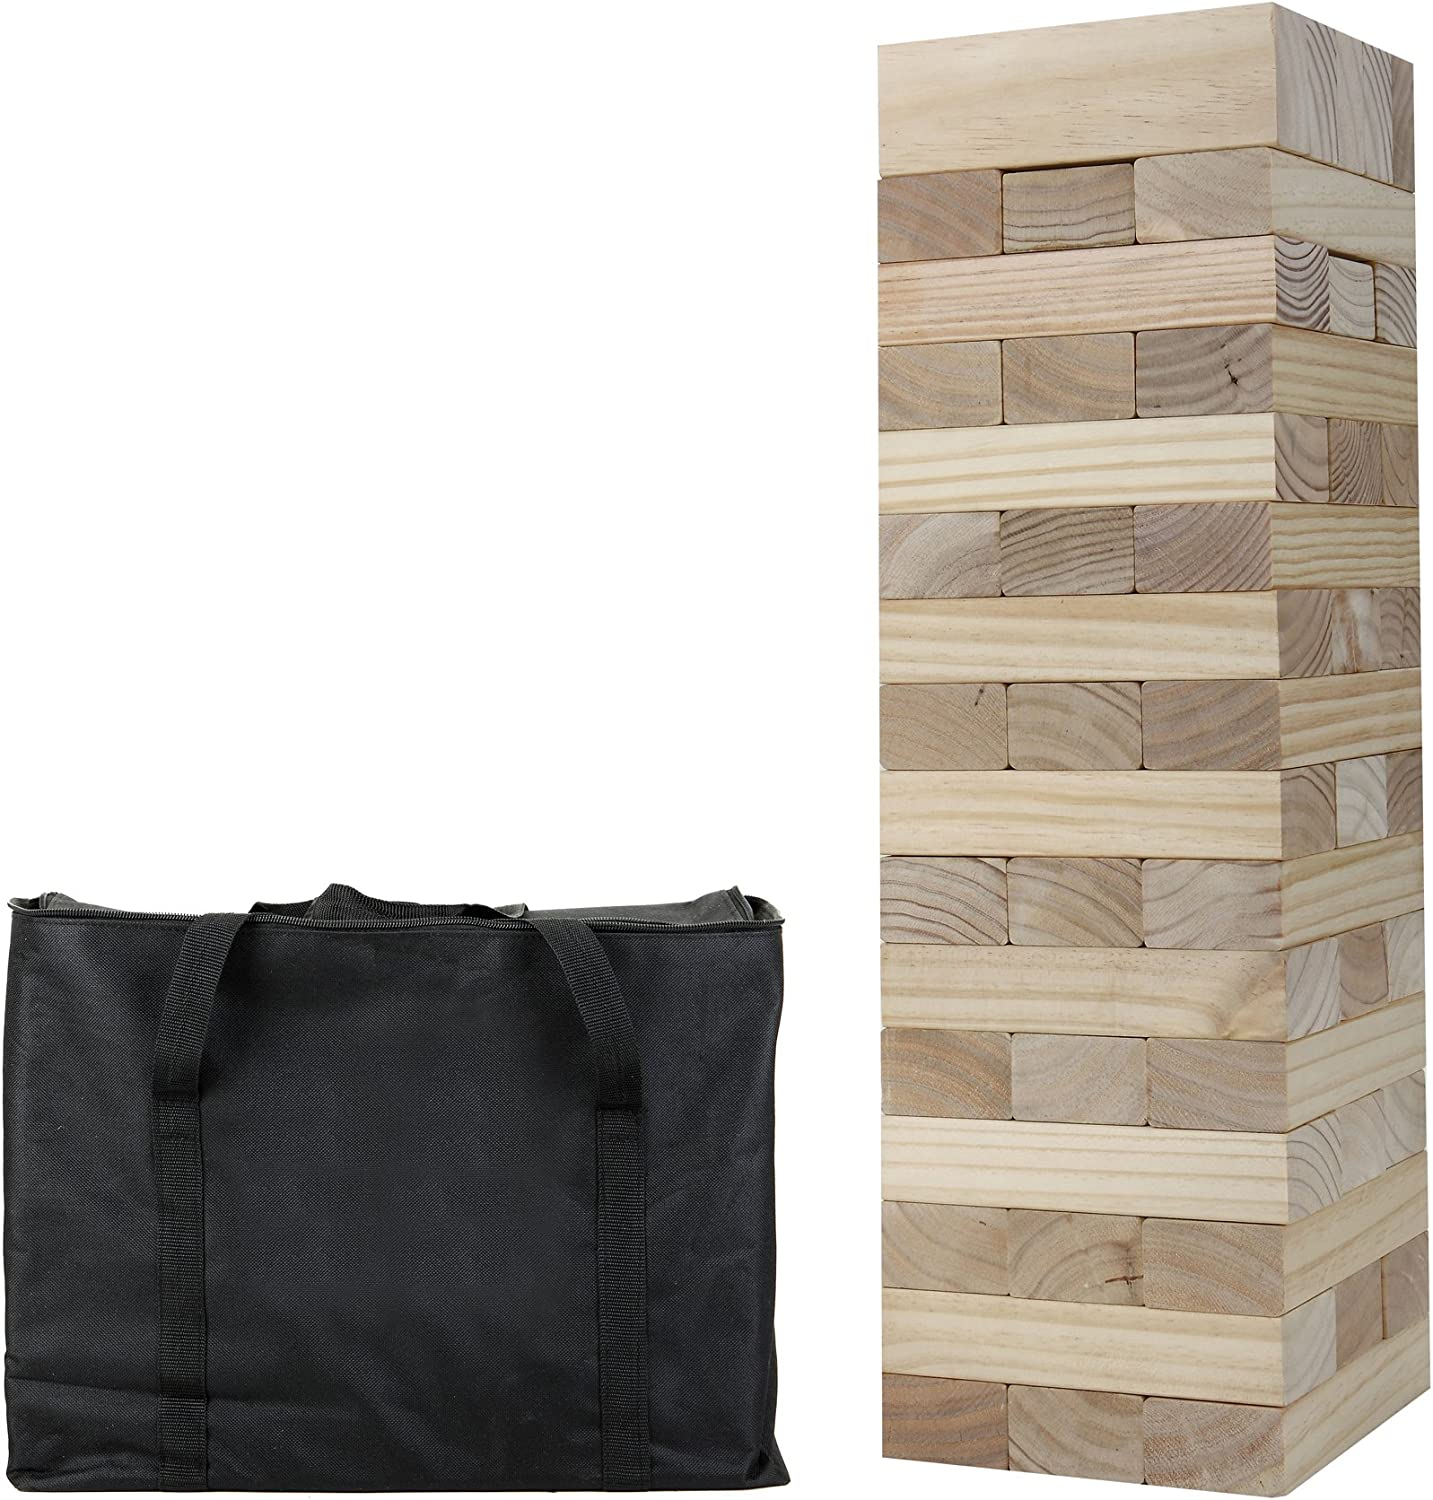 Hathaway Outdoor Block Out Wood Toppling Tower Stacking Collapsing Game with Bag